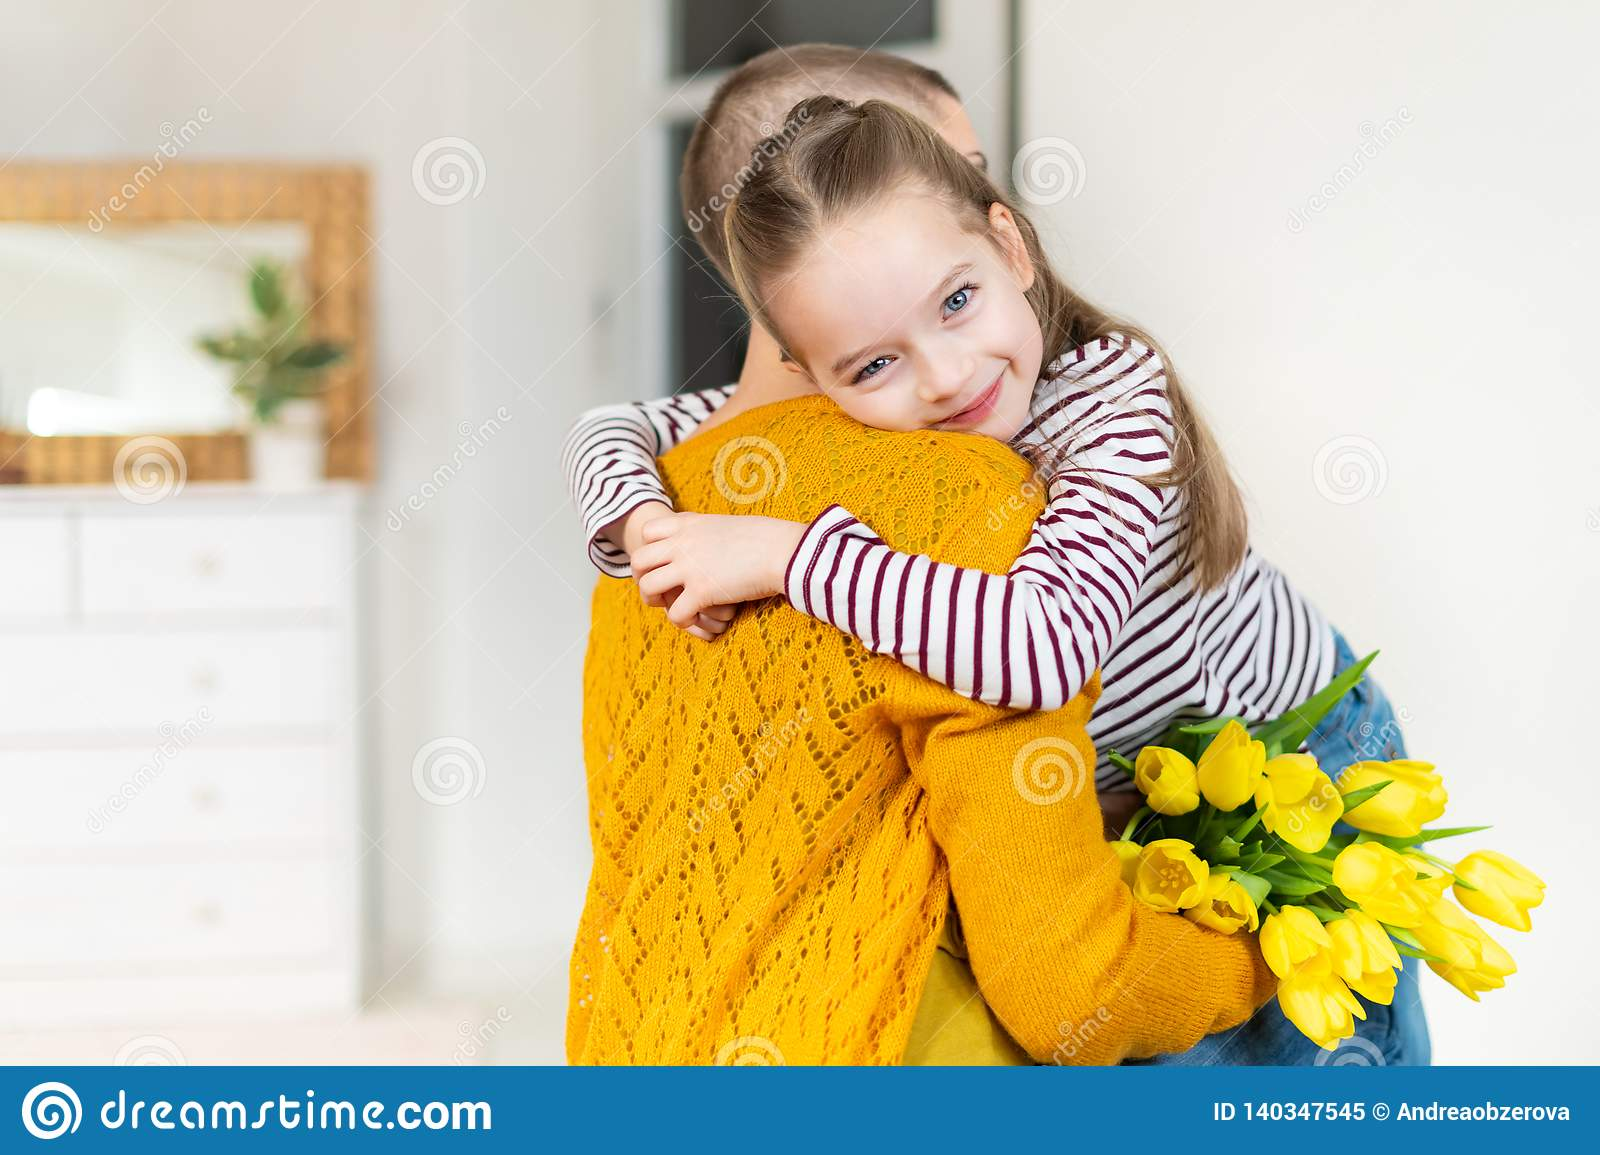 Happy Mother`s Day or Birthday Background. Adorable young girl surprising her mom, young cancer patient, with bouquet of tulips.